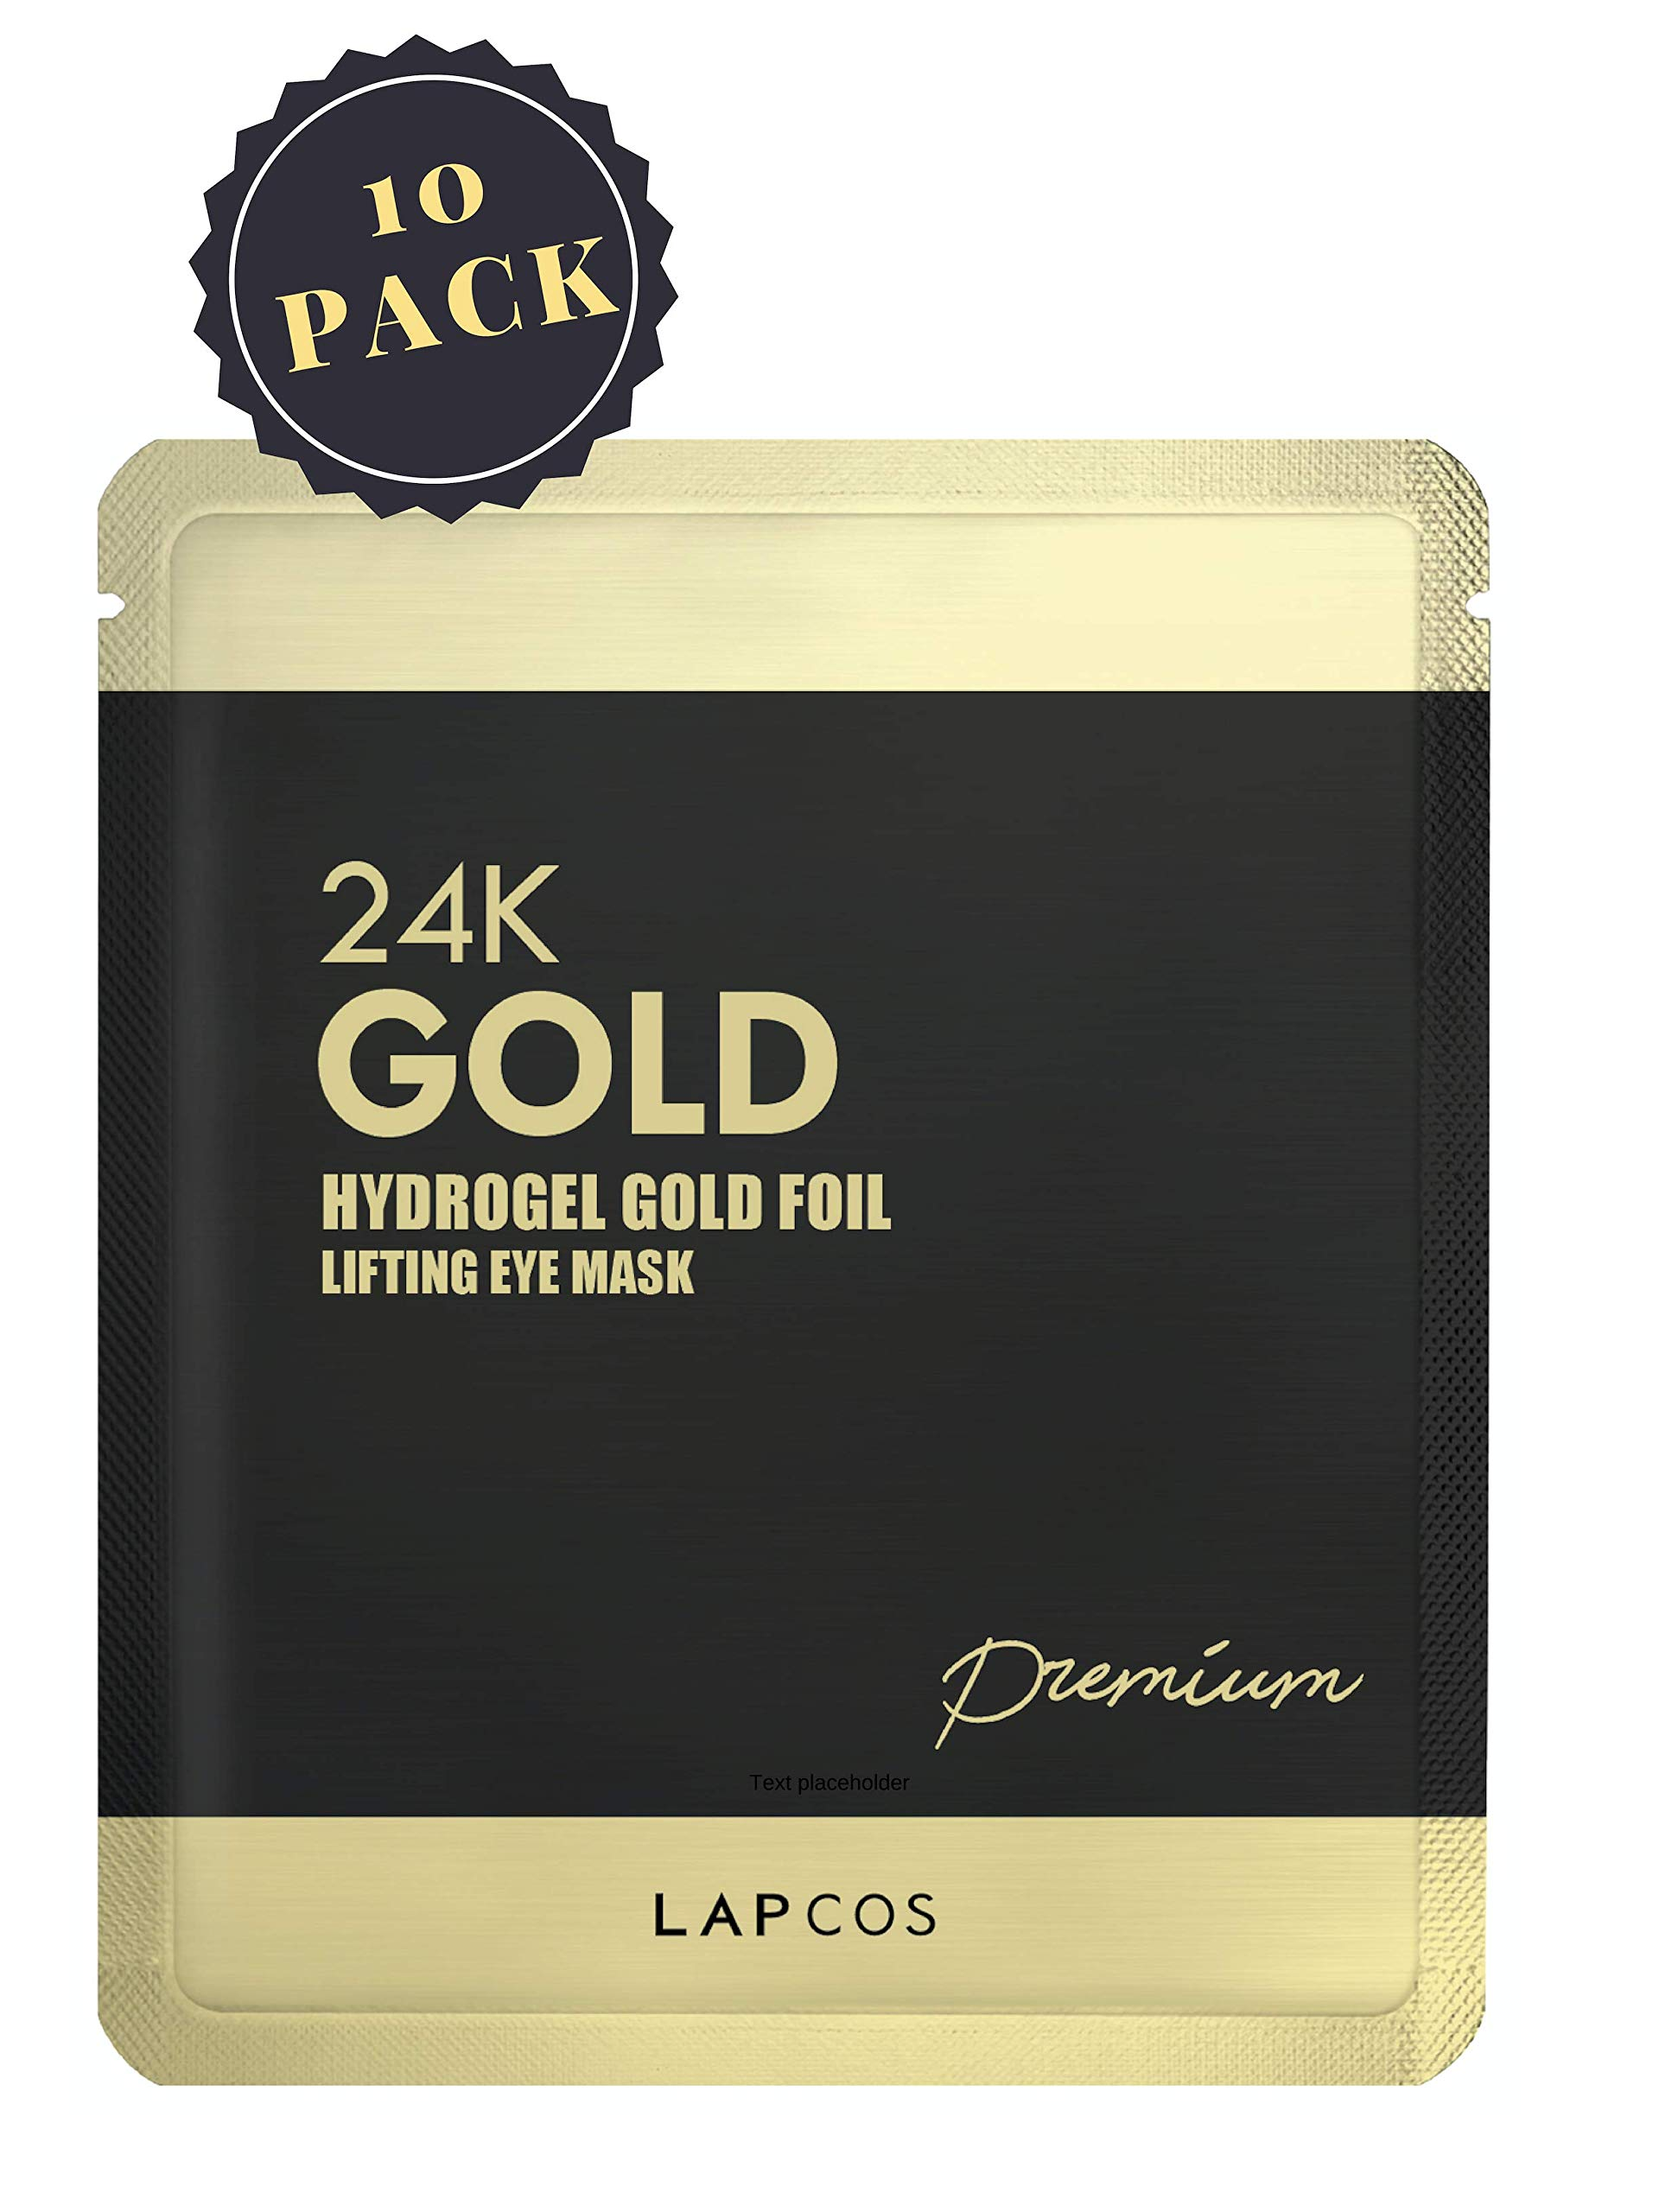 Lapcos 24K Gold Foil Hydrogel Eye Mask (10pack)